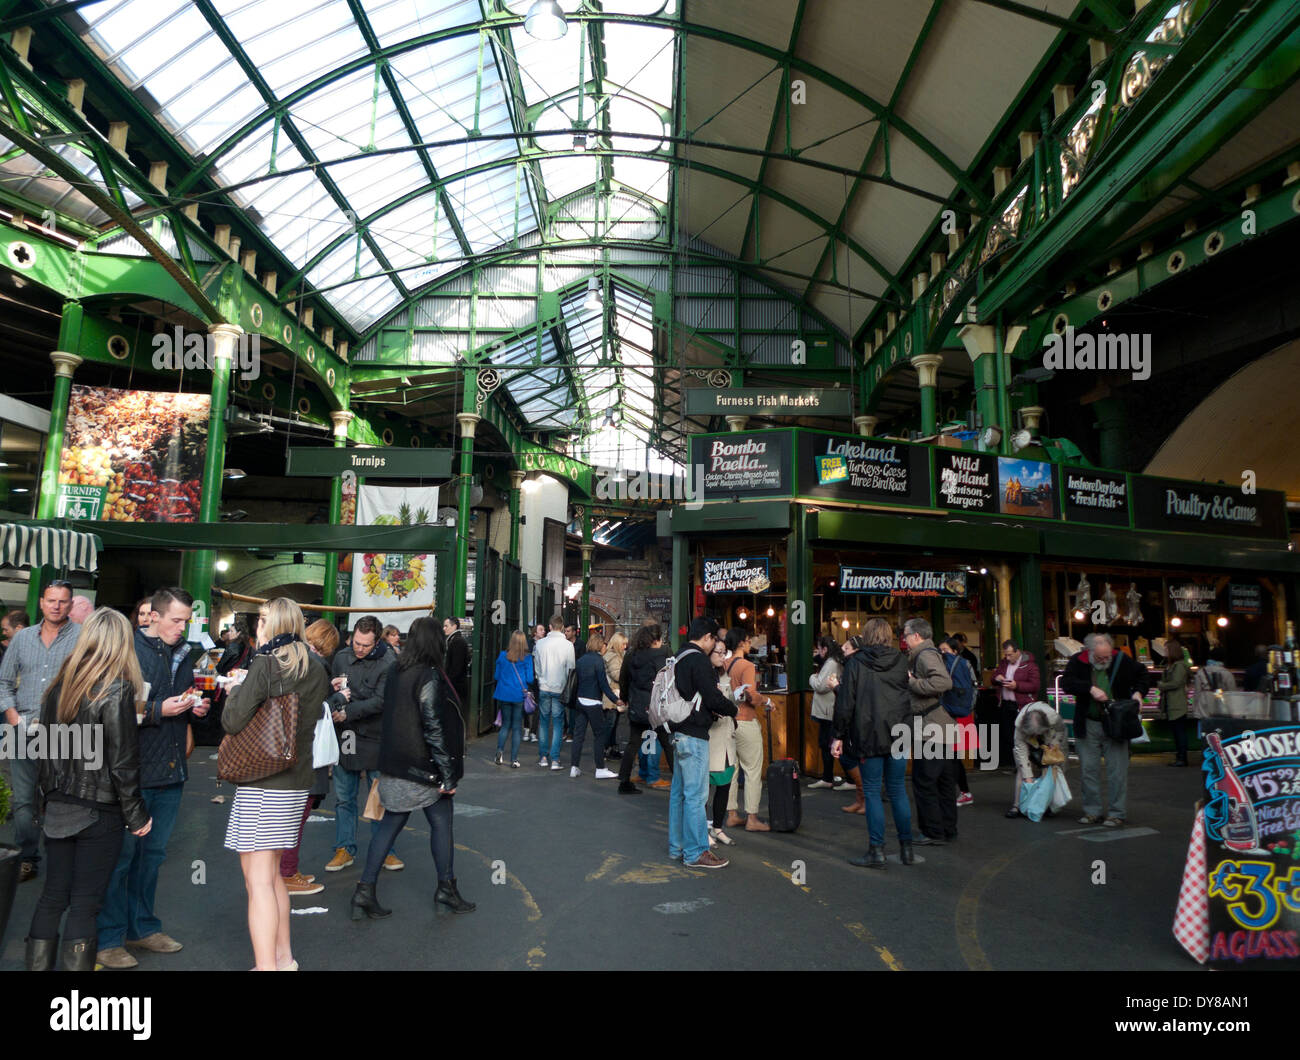 Interior view of people at food stalls in Borough Market, London Bridge, London, UK  KATHY DEWITT - Stock Image